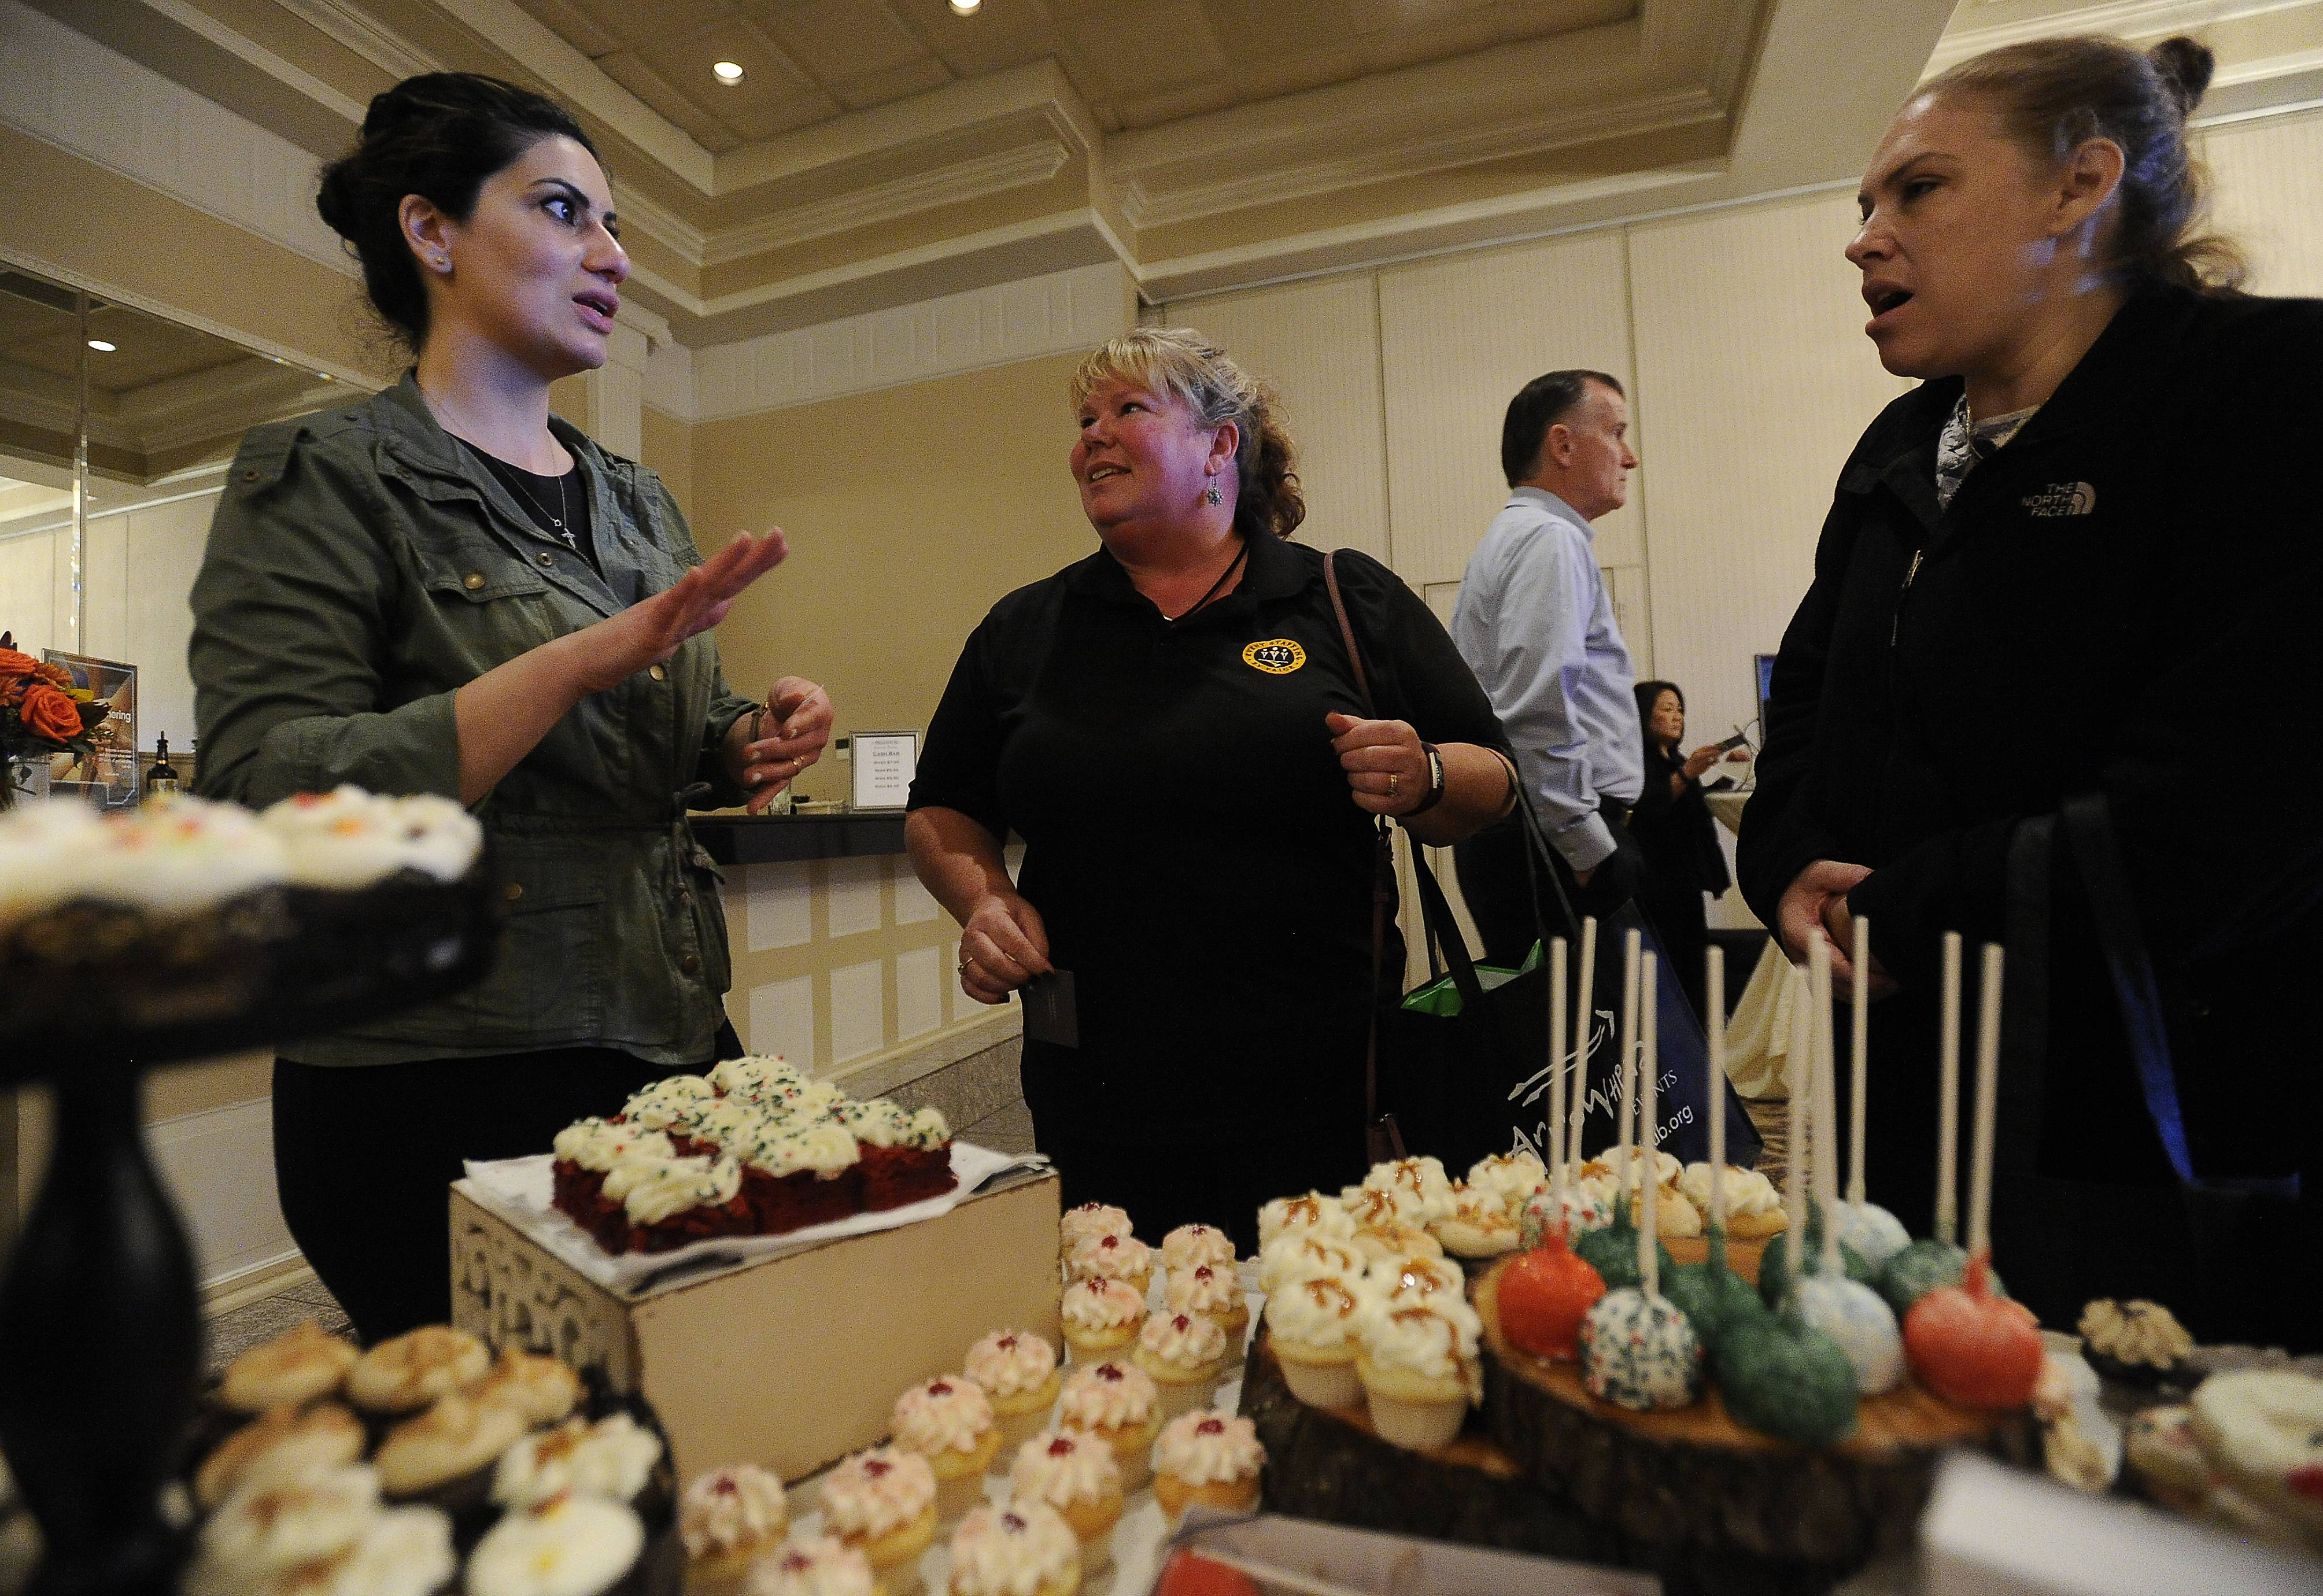 Paige Logan of Lombard, center, with her friend Jennifer Freymark of Glen Ellyn and Norma Samaan, left, from The Vanilla Sugar Bakery of Winfield took part in the Daily Herald Business Ledger's DuPage Hospitality Expo Thursday.